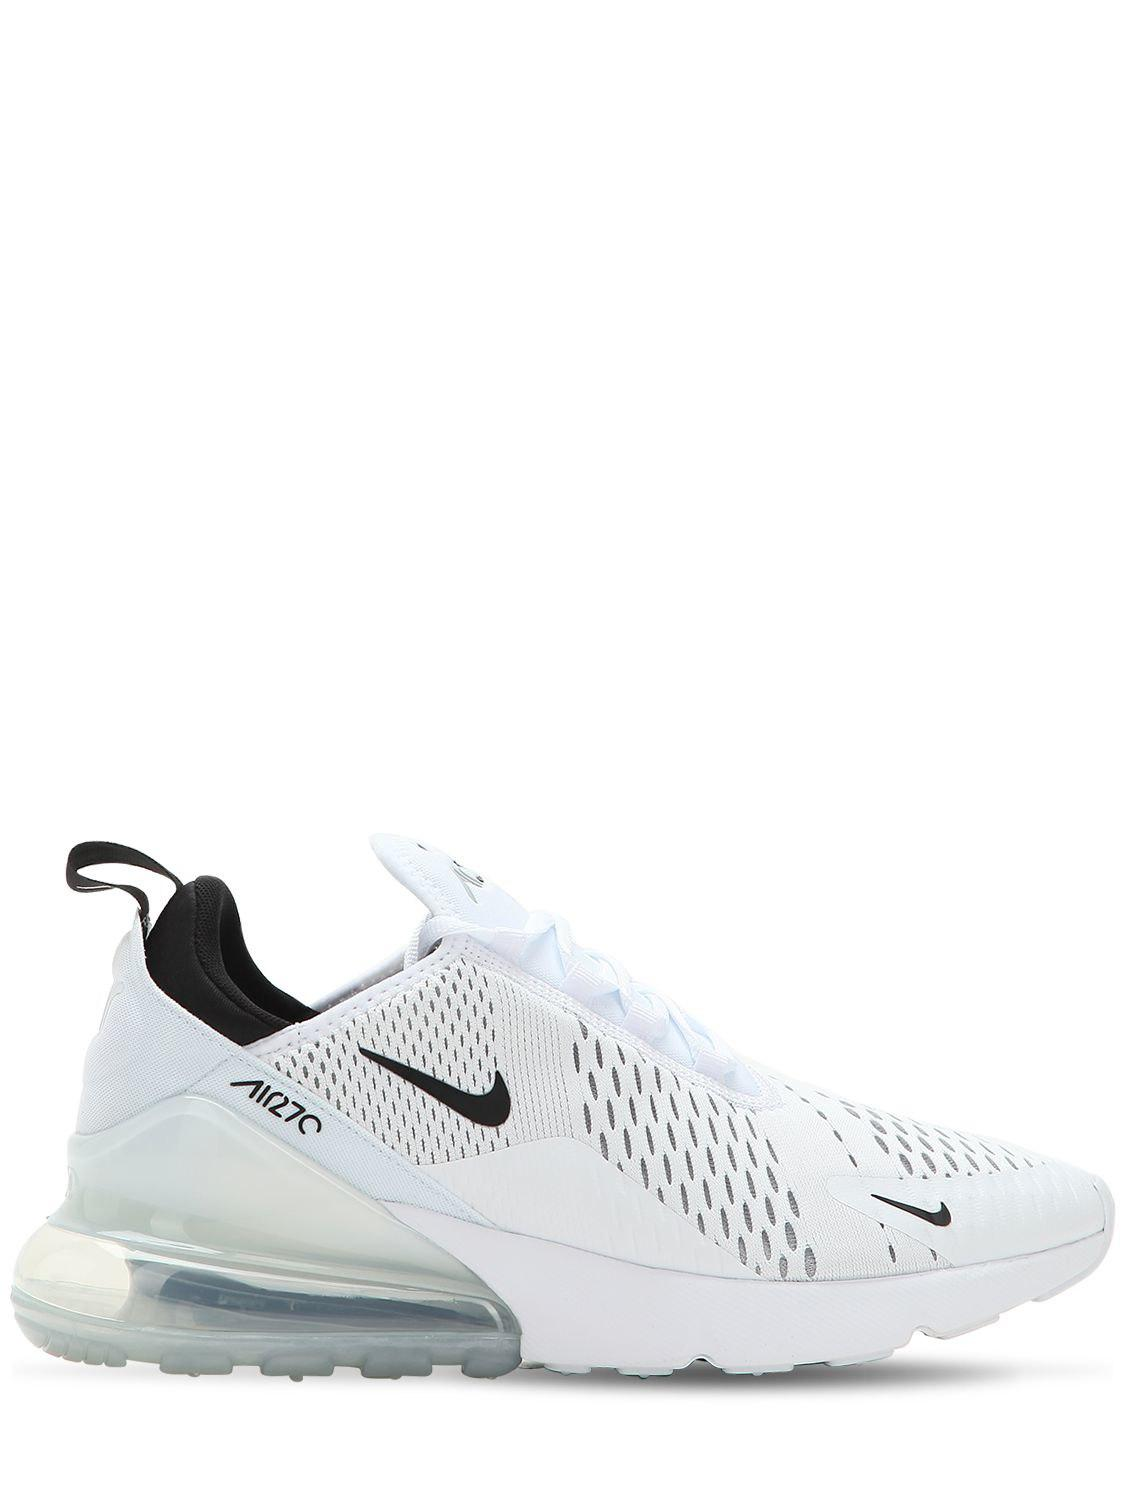 new concept 3f344 3b023 Nike. Men s White Air Max 270 Sneakers